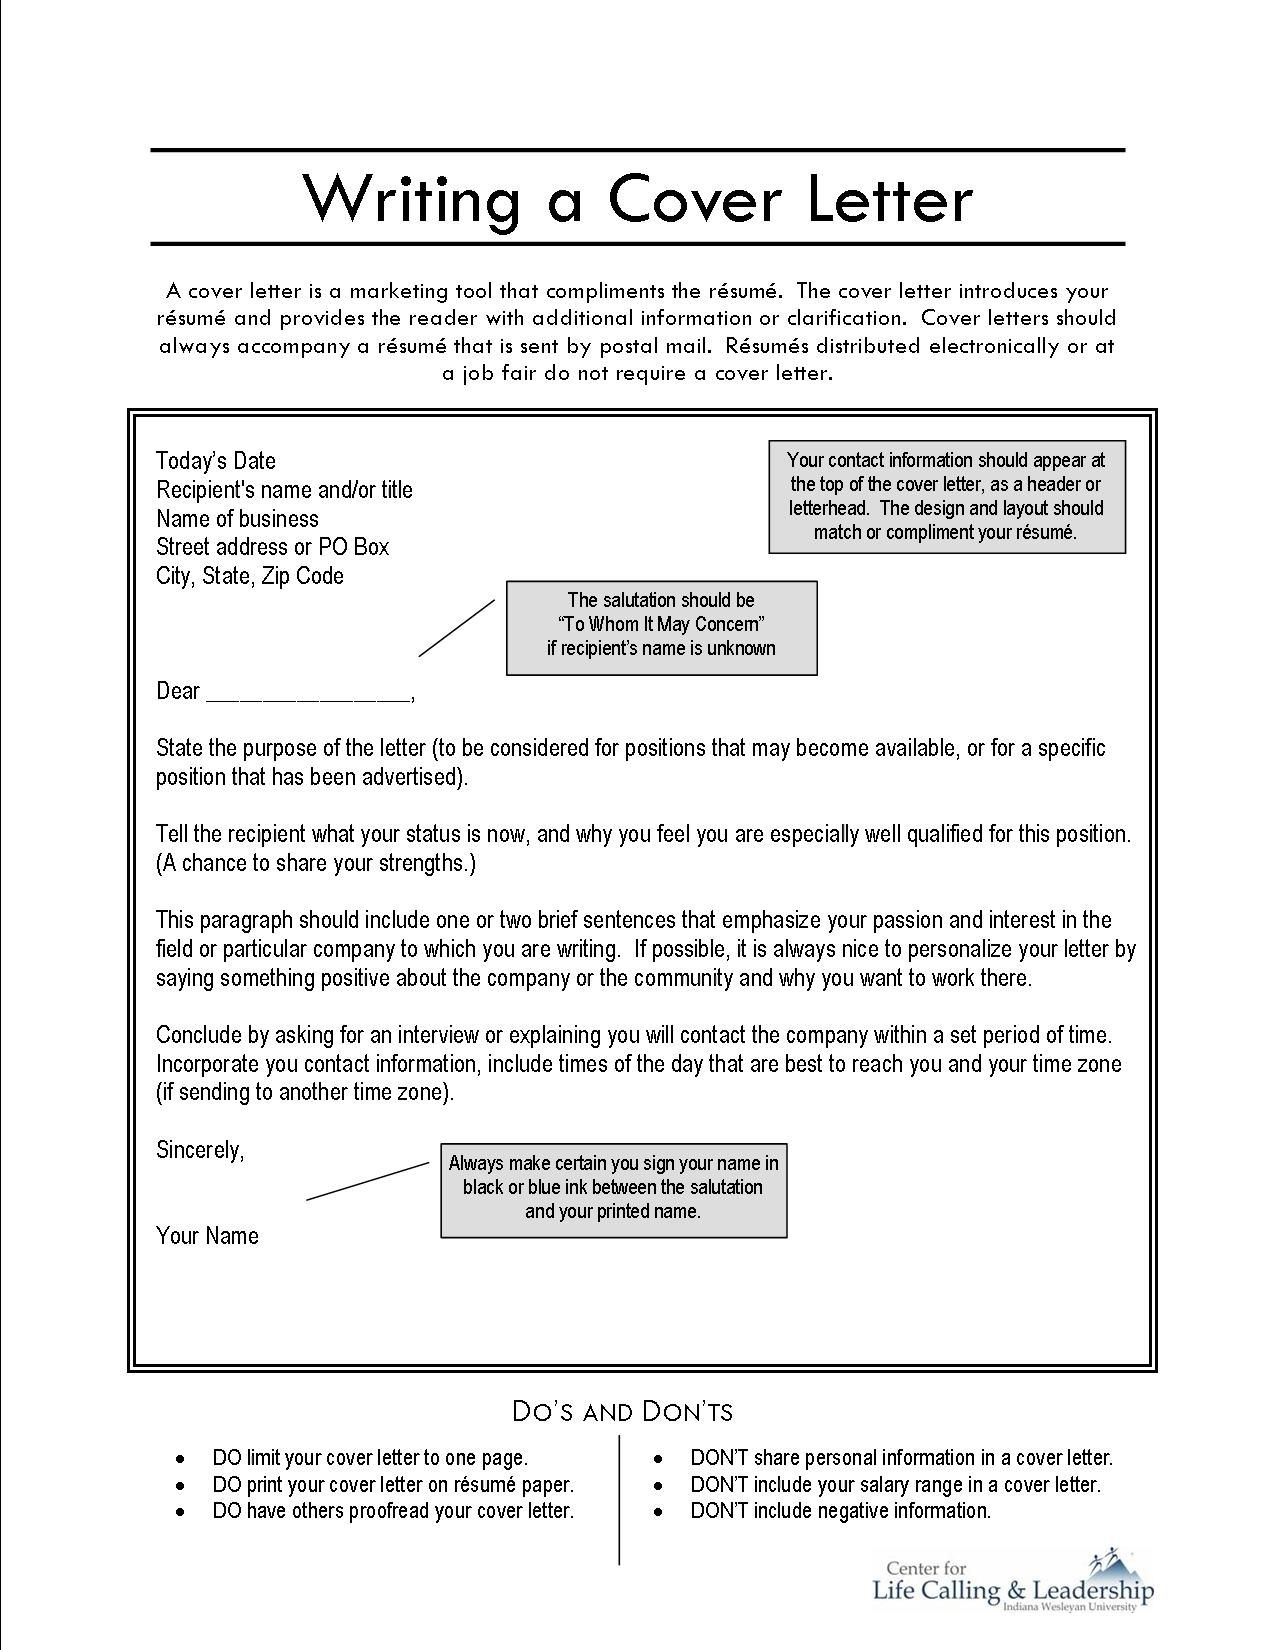 Postal Worker Sample Resume Patient Care Specialist Cover Letter For Usps  Job How Intent What Pertaining